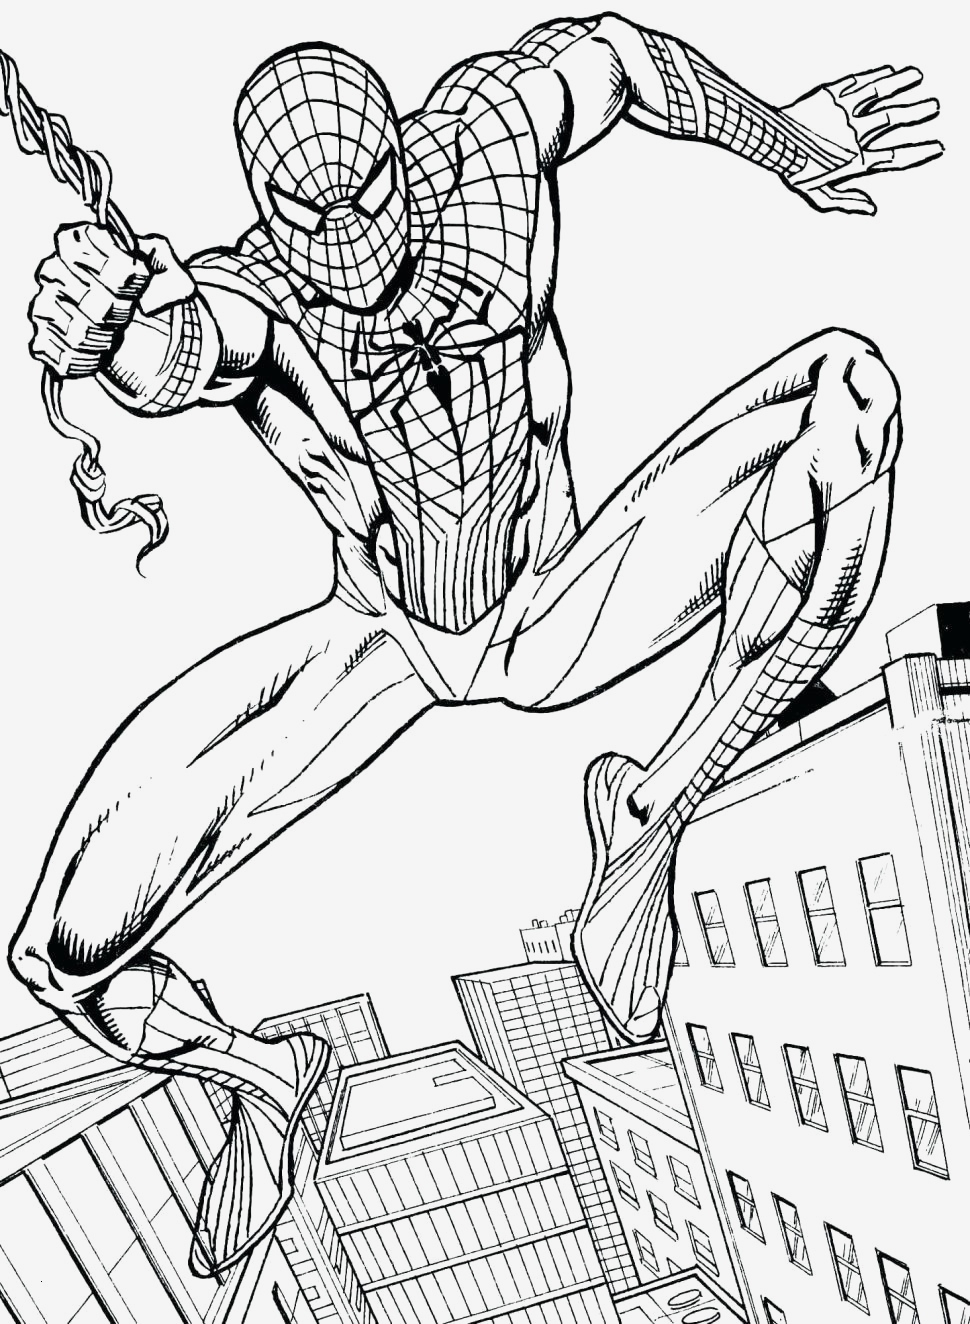 free printable spiderman coloring pages Collection-Free Printable Spiderman Coloring Pages Luxury Fabulous Spiderman 14-o